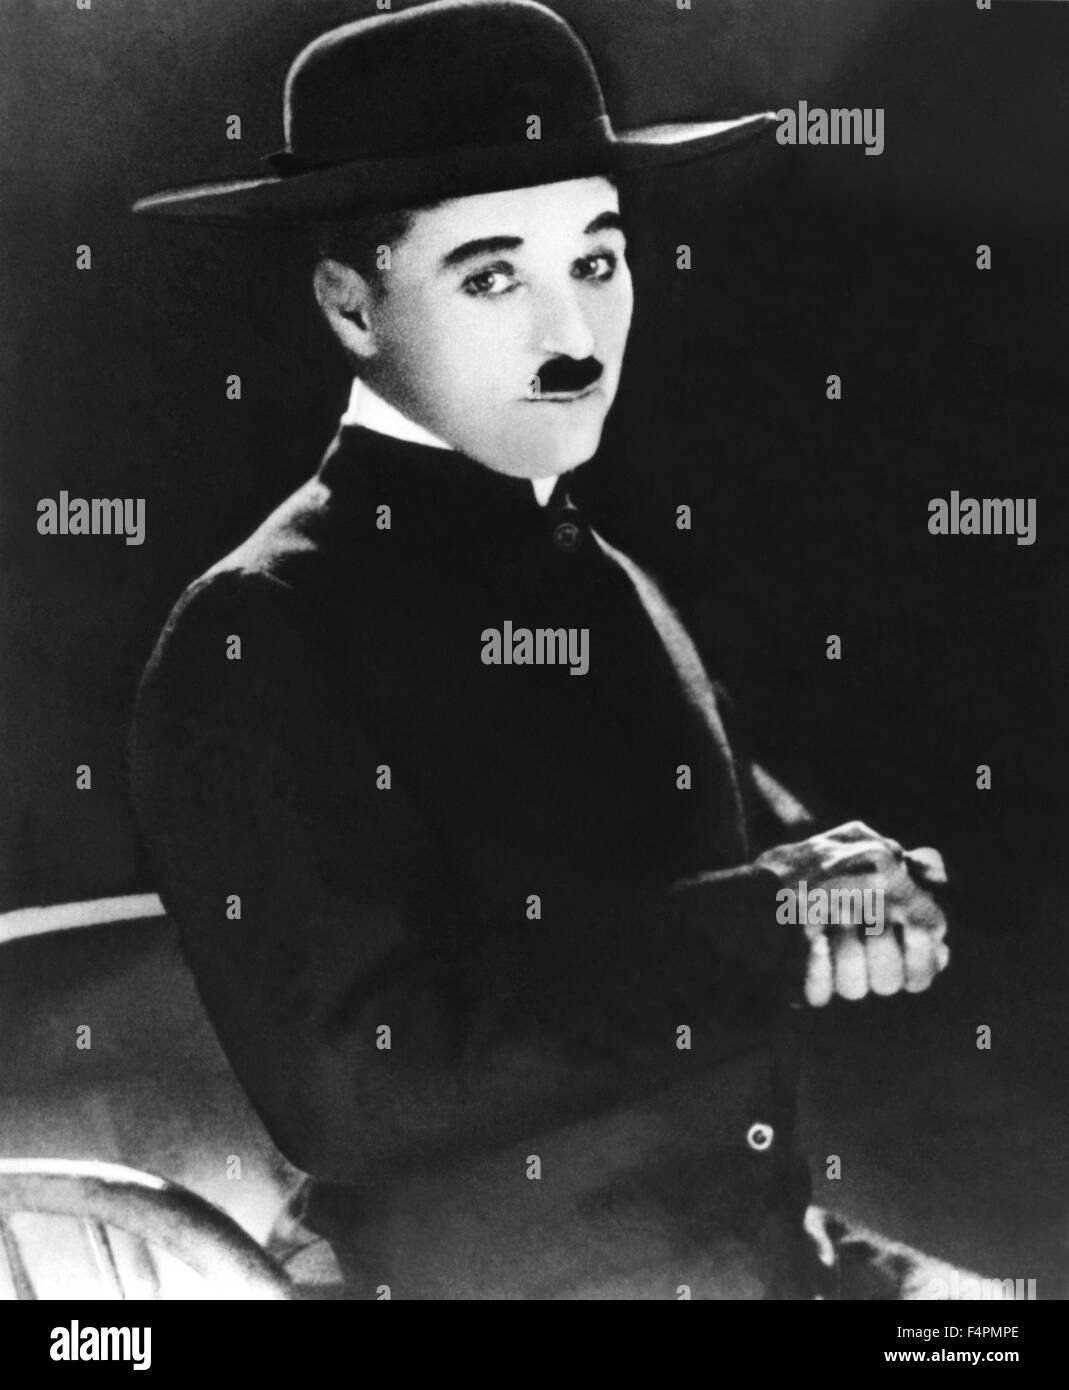 Charles Chaplin / The Pilgrim / 1923 directed by Charles Chaplin [Associated First National Pictut] - Stock Image